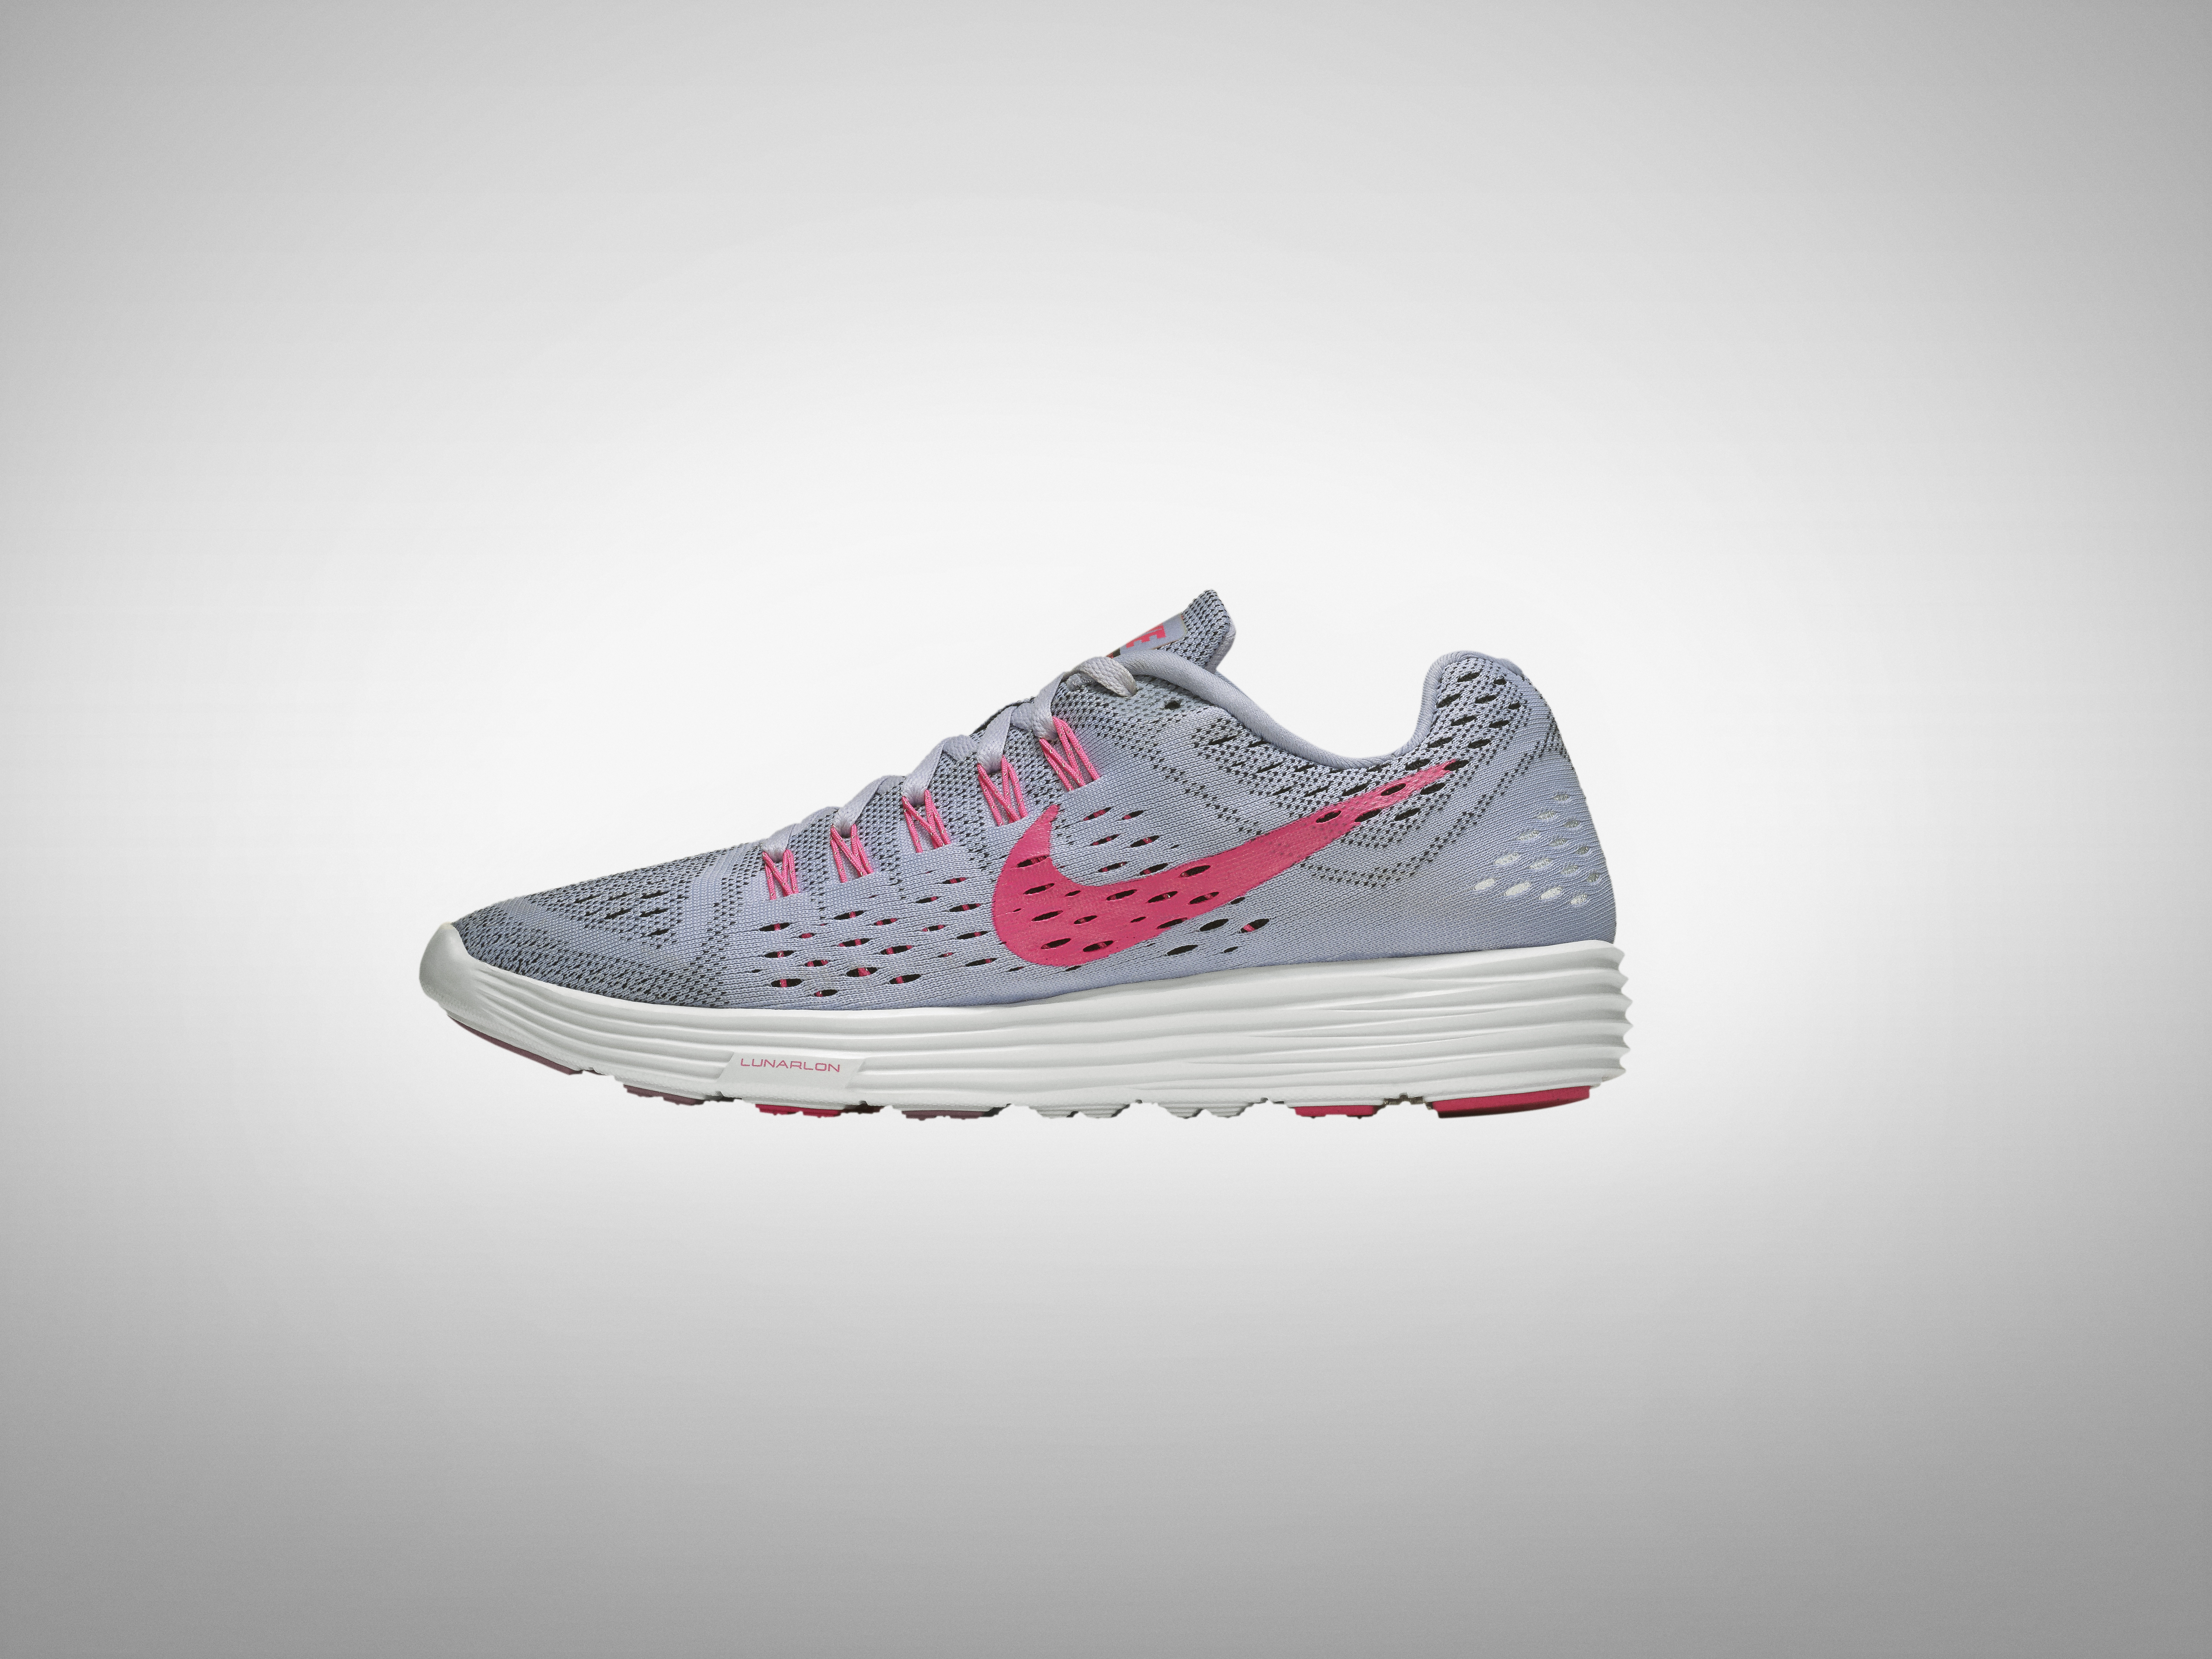 of provincial running max jd saskatchewan junior shoes most air nike archives flat comforter comfortable a men for